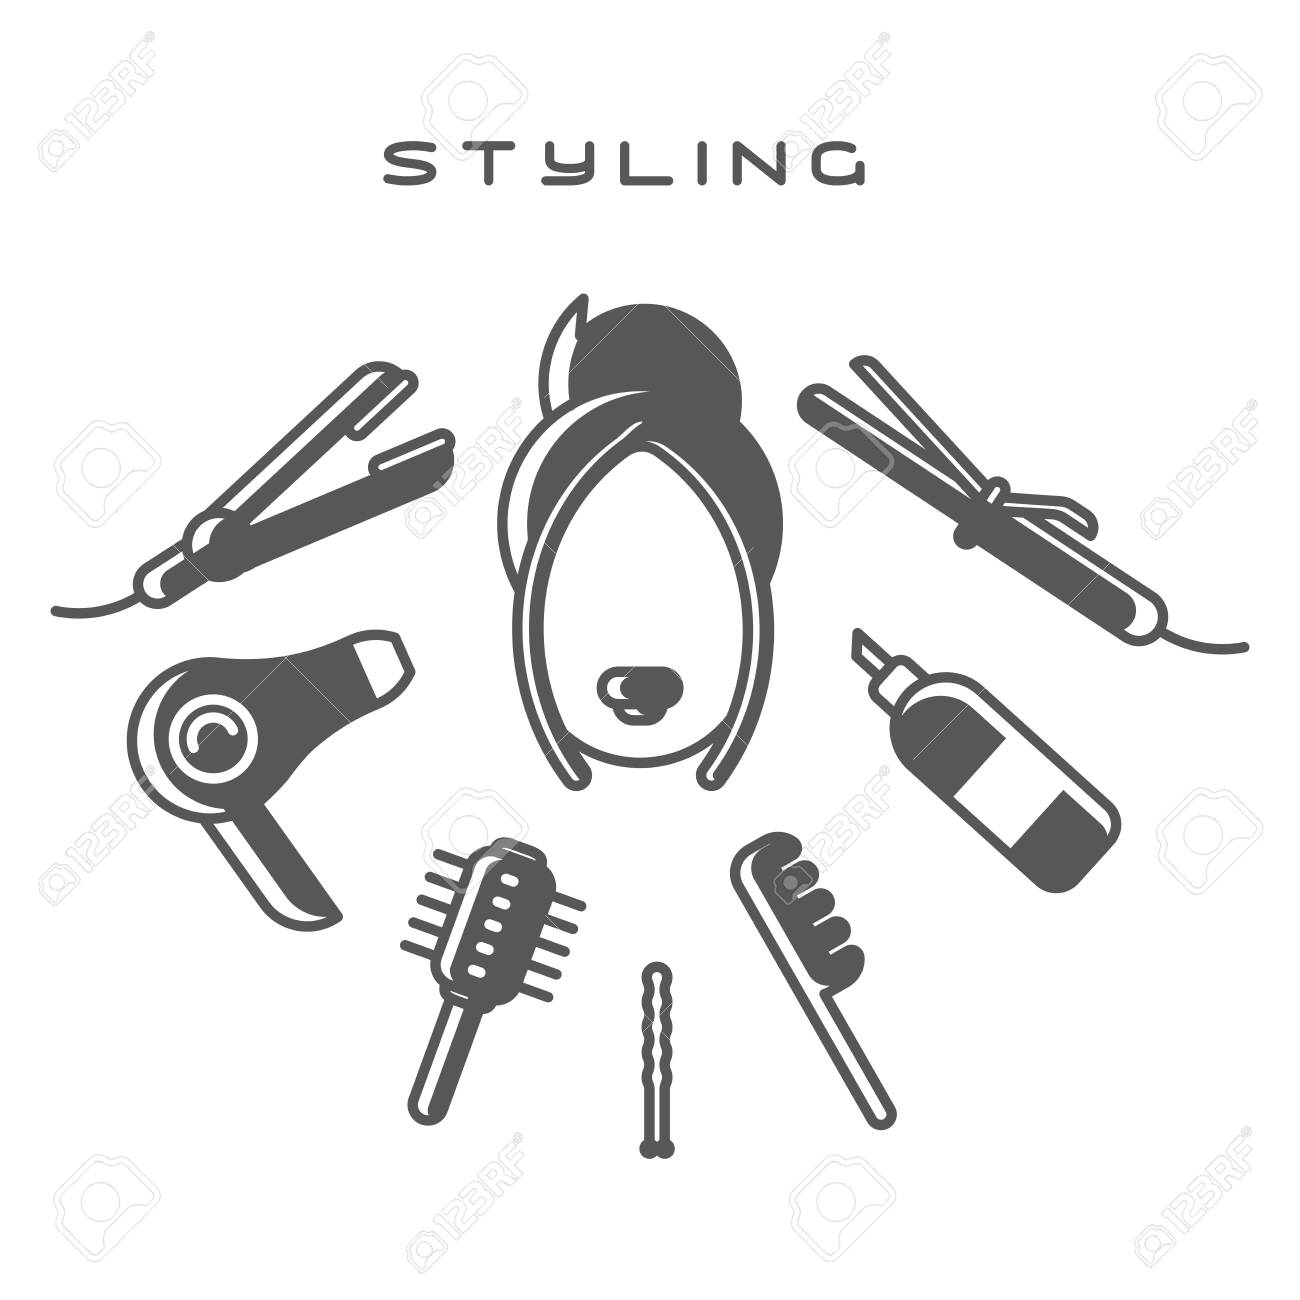 Female head surrounded by styling tools on white background. Flat style vector illustration - 129013094